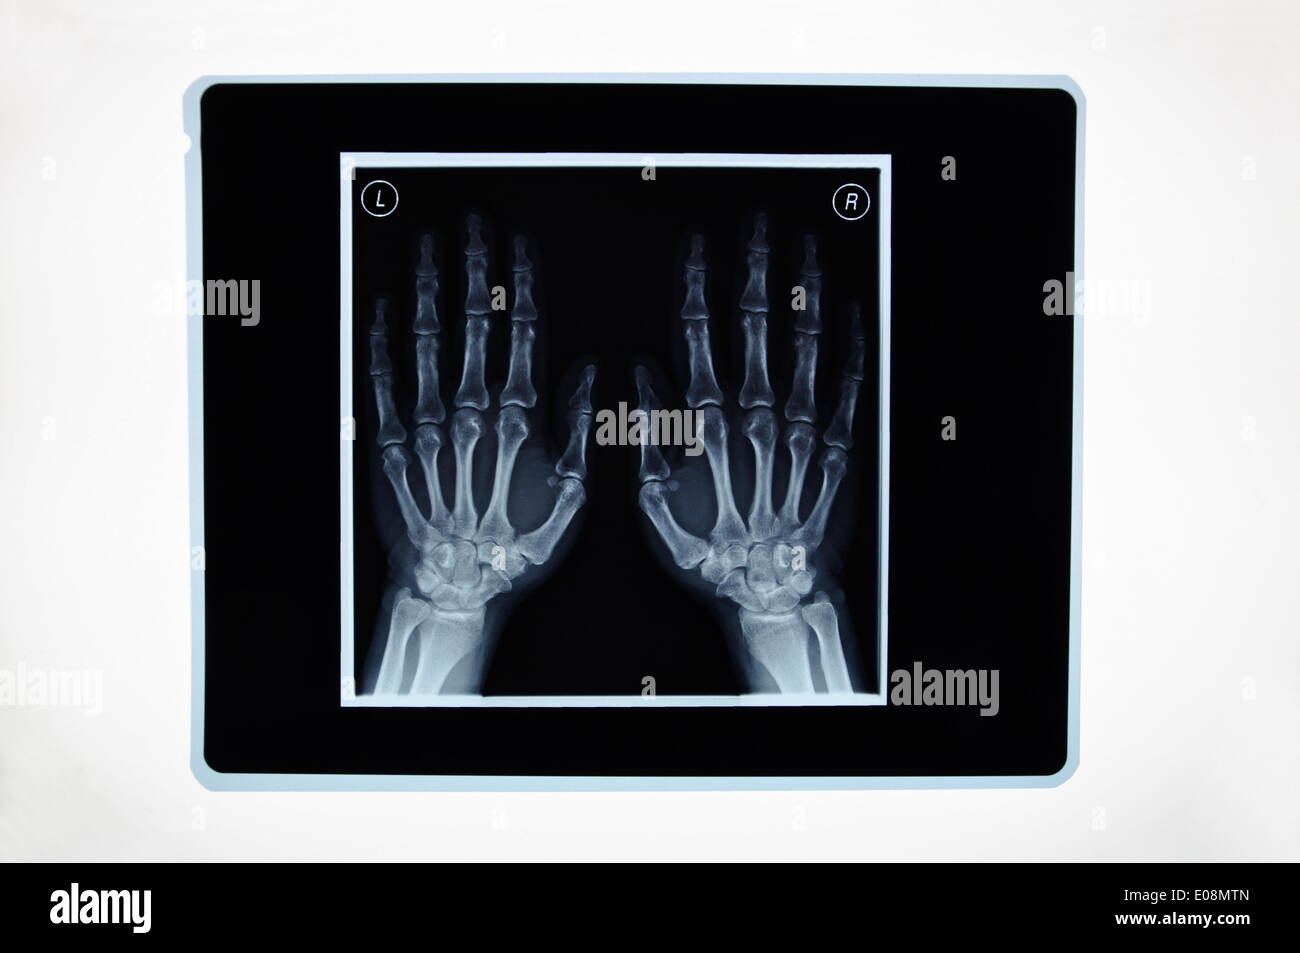 Illustration - An X-ray display the bones of two hands in Germany, 19 February 2011. Photo: Berliner Verlag/Steinach - NO WIRE SERVICE - Stock Image